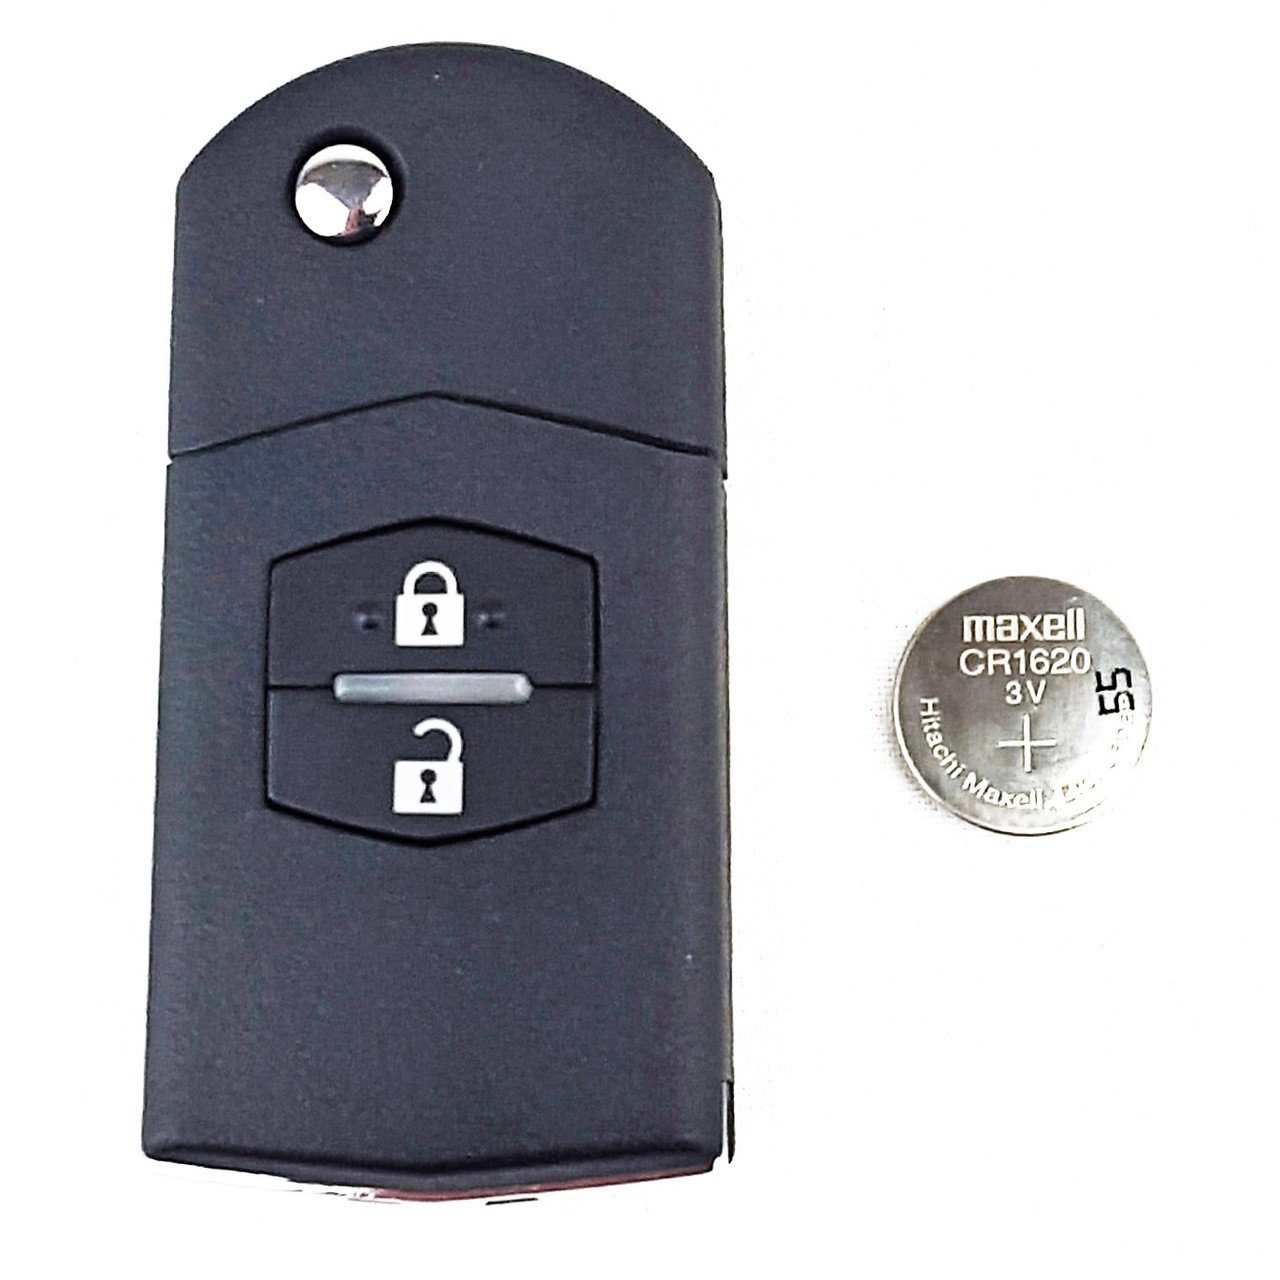 new cr1620 maxell retractable key remote lithium battery. Black Bedroom Furniture Sets. Home Design Ideas